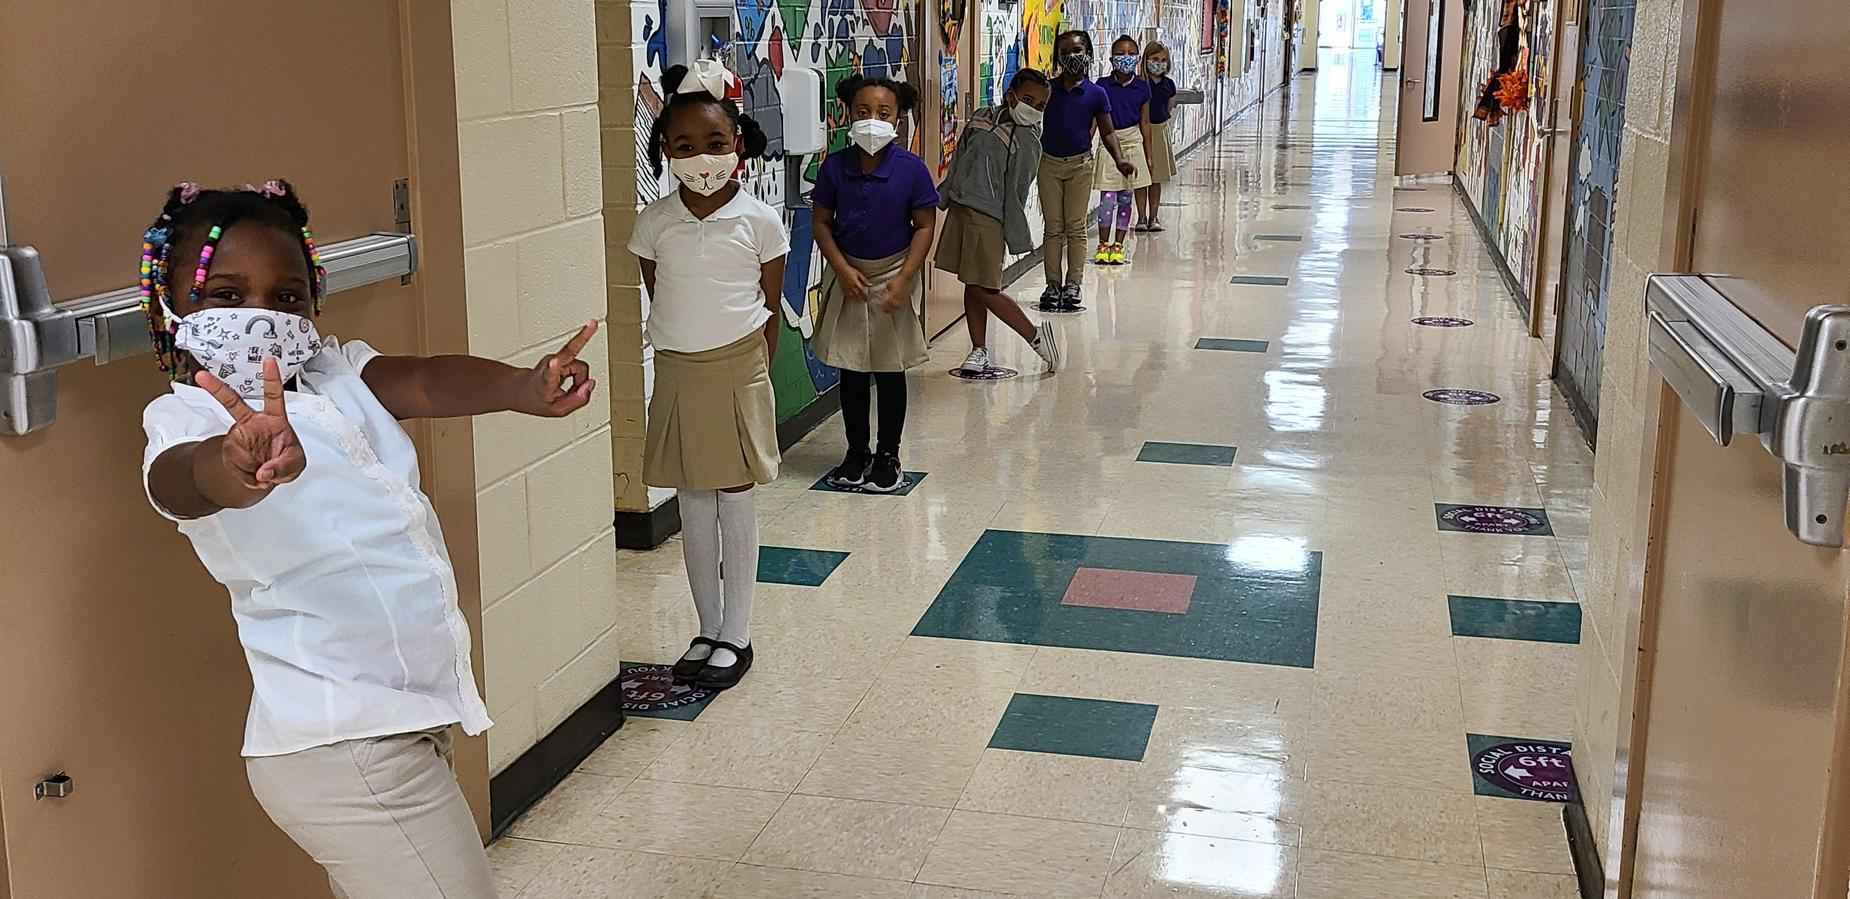 First graders lined up in the hallway.